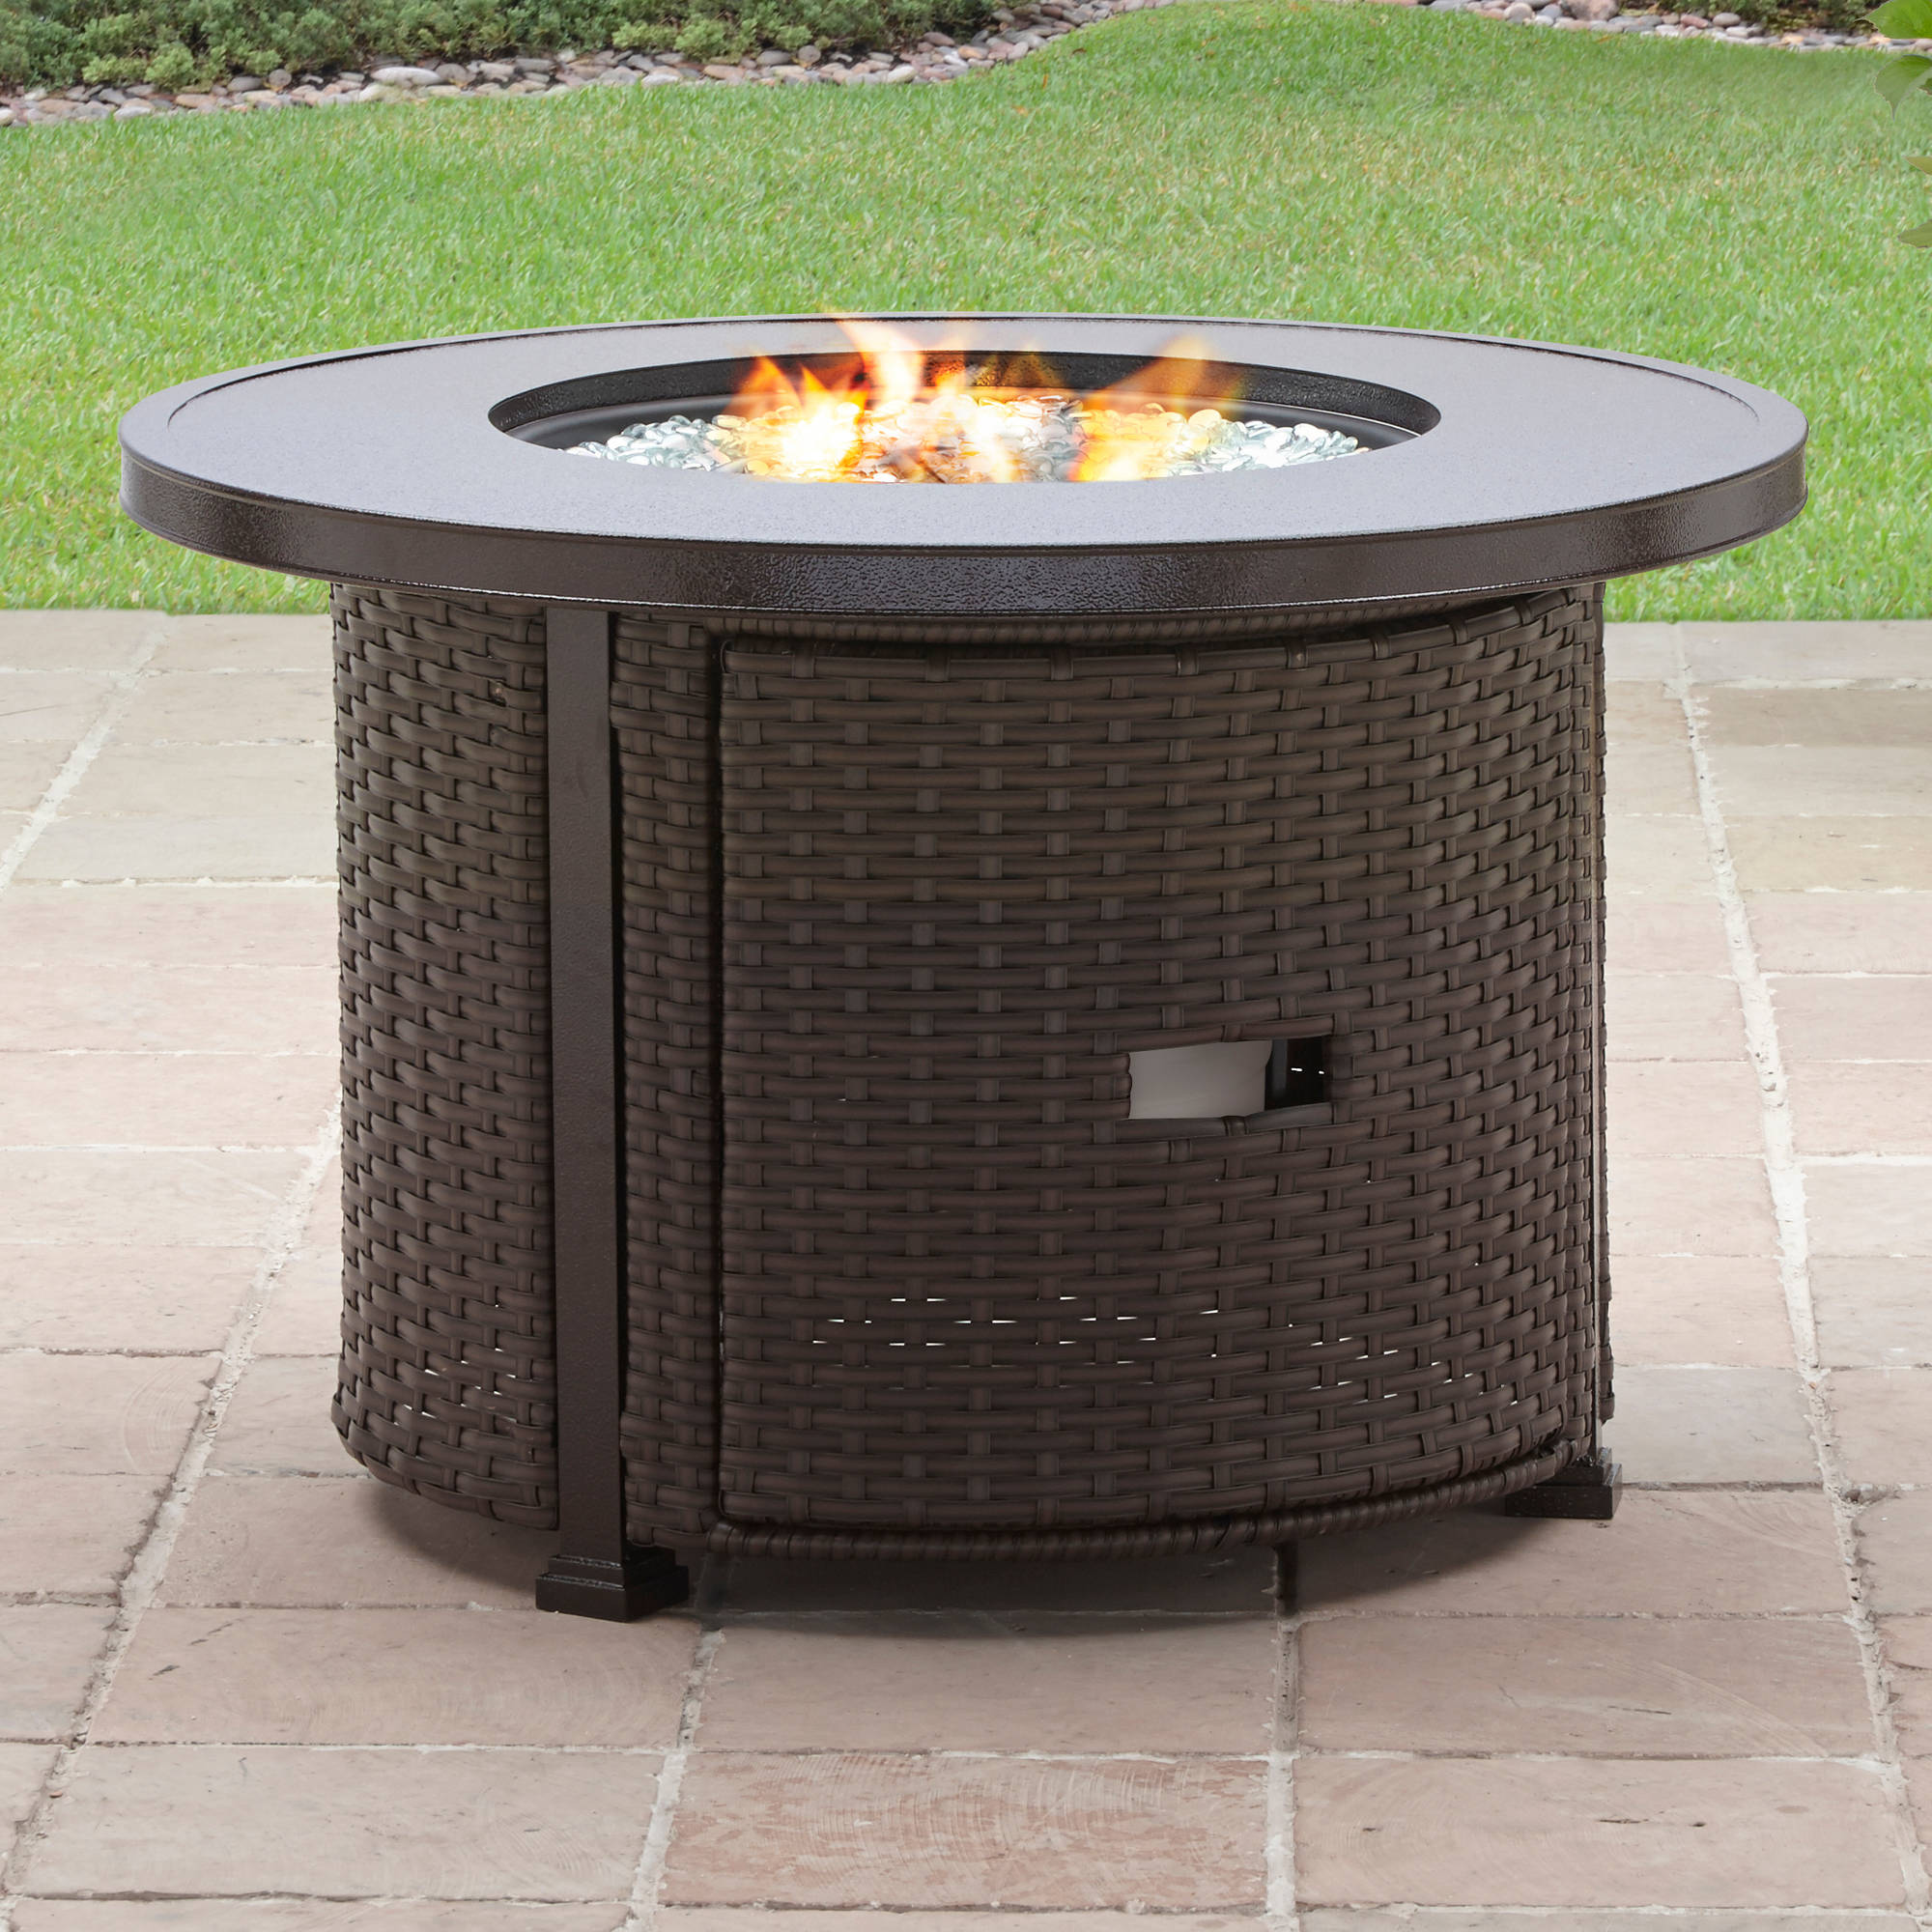 Better homes and gardens colebrook 37 gas fire pit walmart com